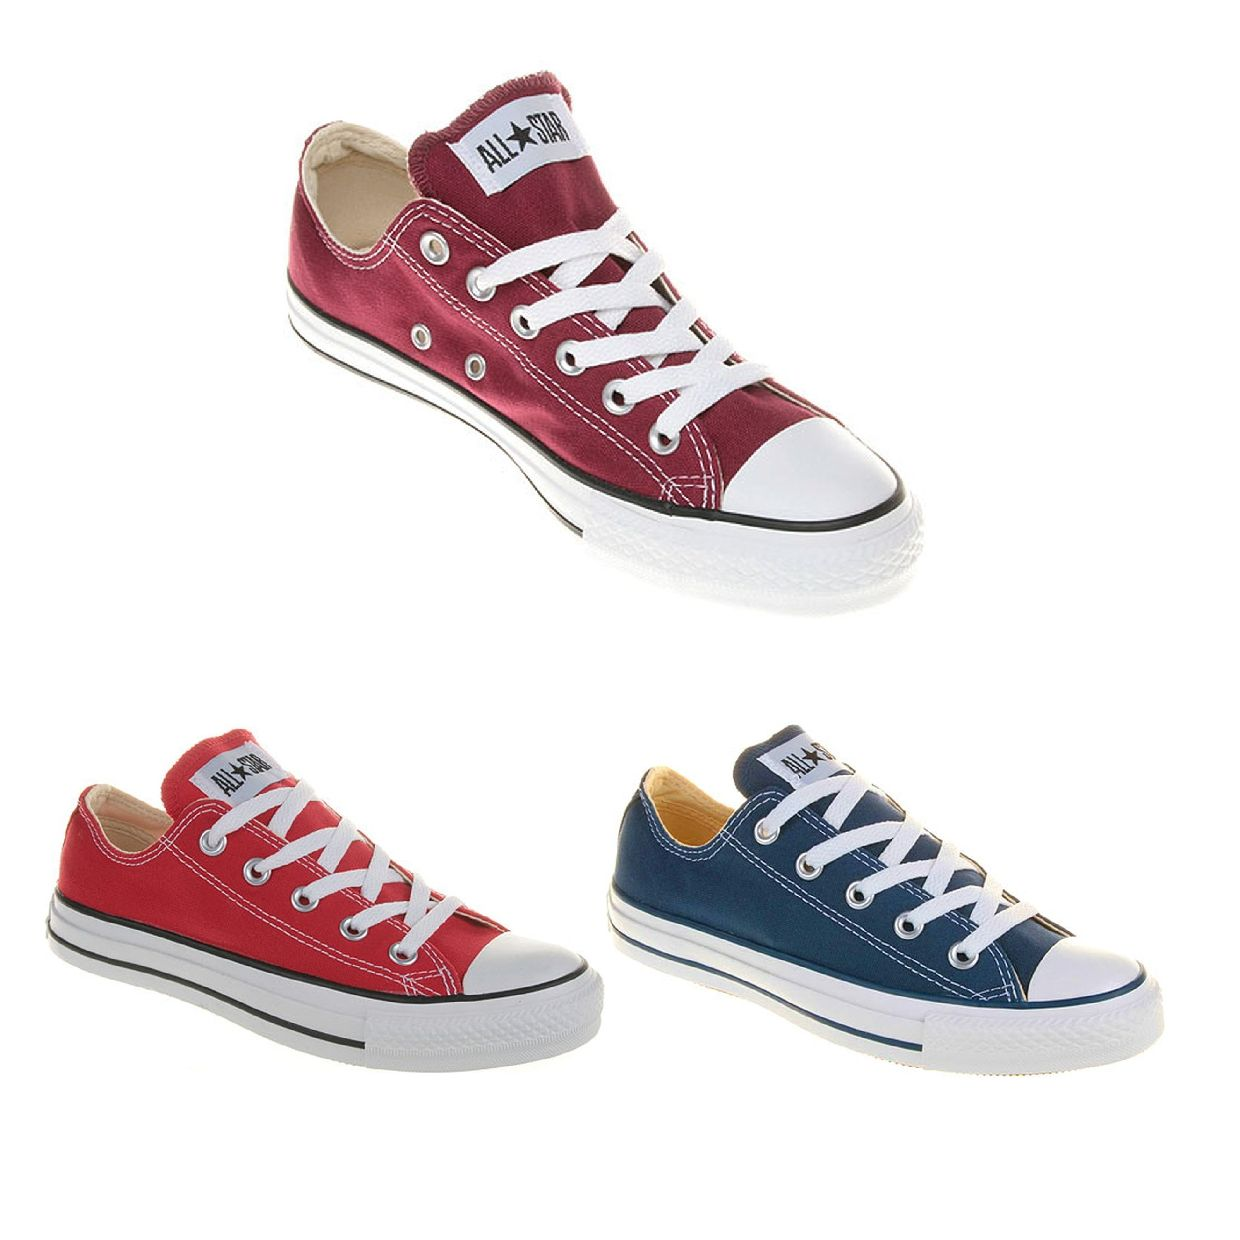 Converse Chuck Taylor All Star OX Sneaker Halbschuhe Canvas Unisex Schuhe CO